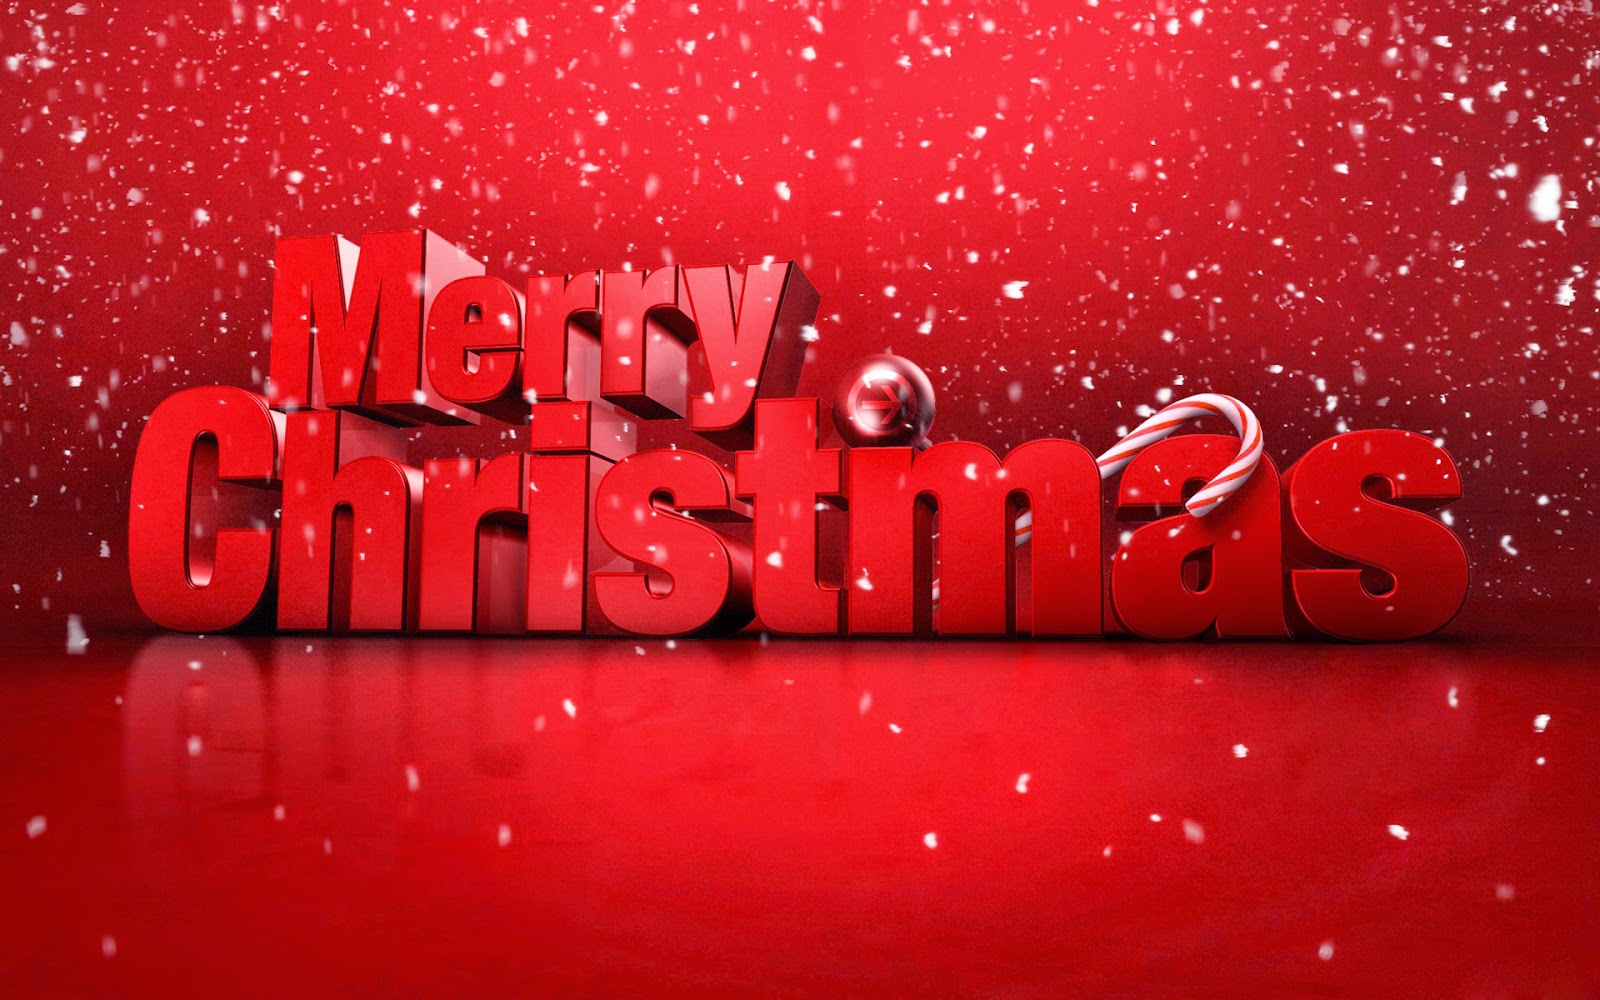 Merry-Christmas-3d-text-red-BG-with-snowfall-effect-HD-wallpaper-image.jpg